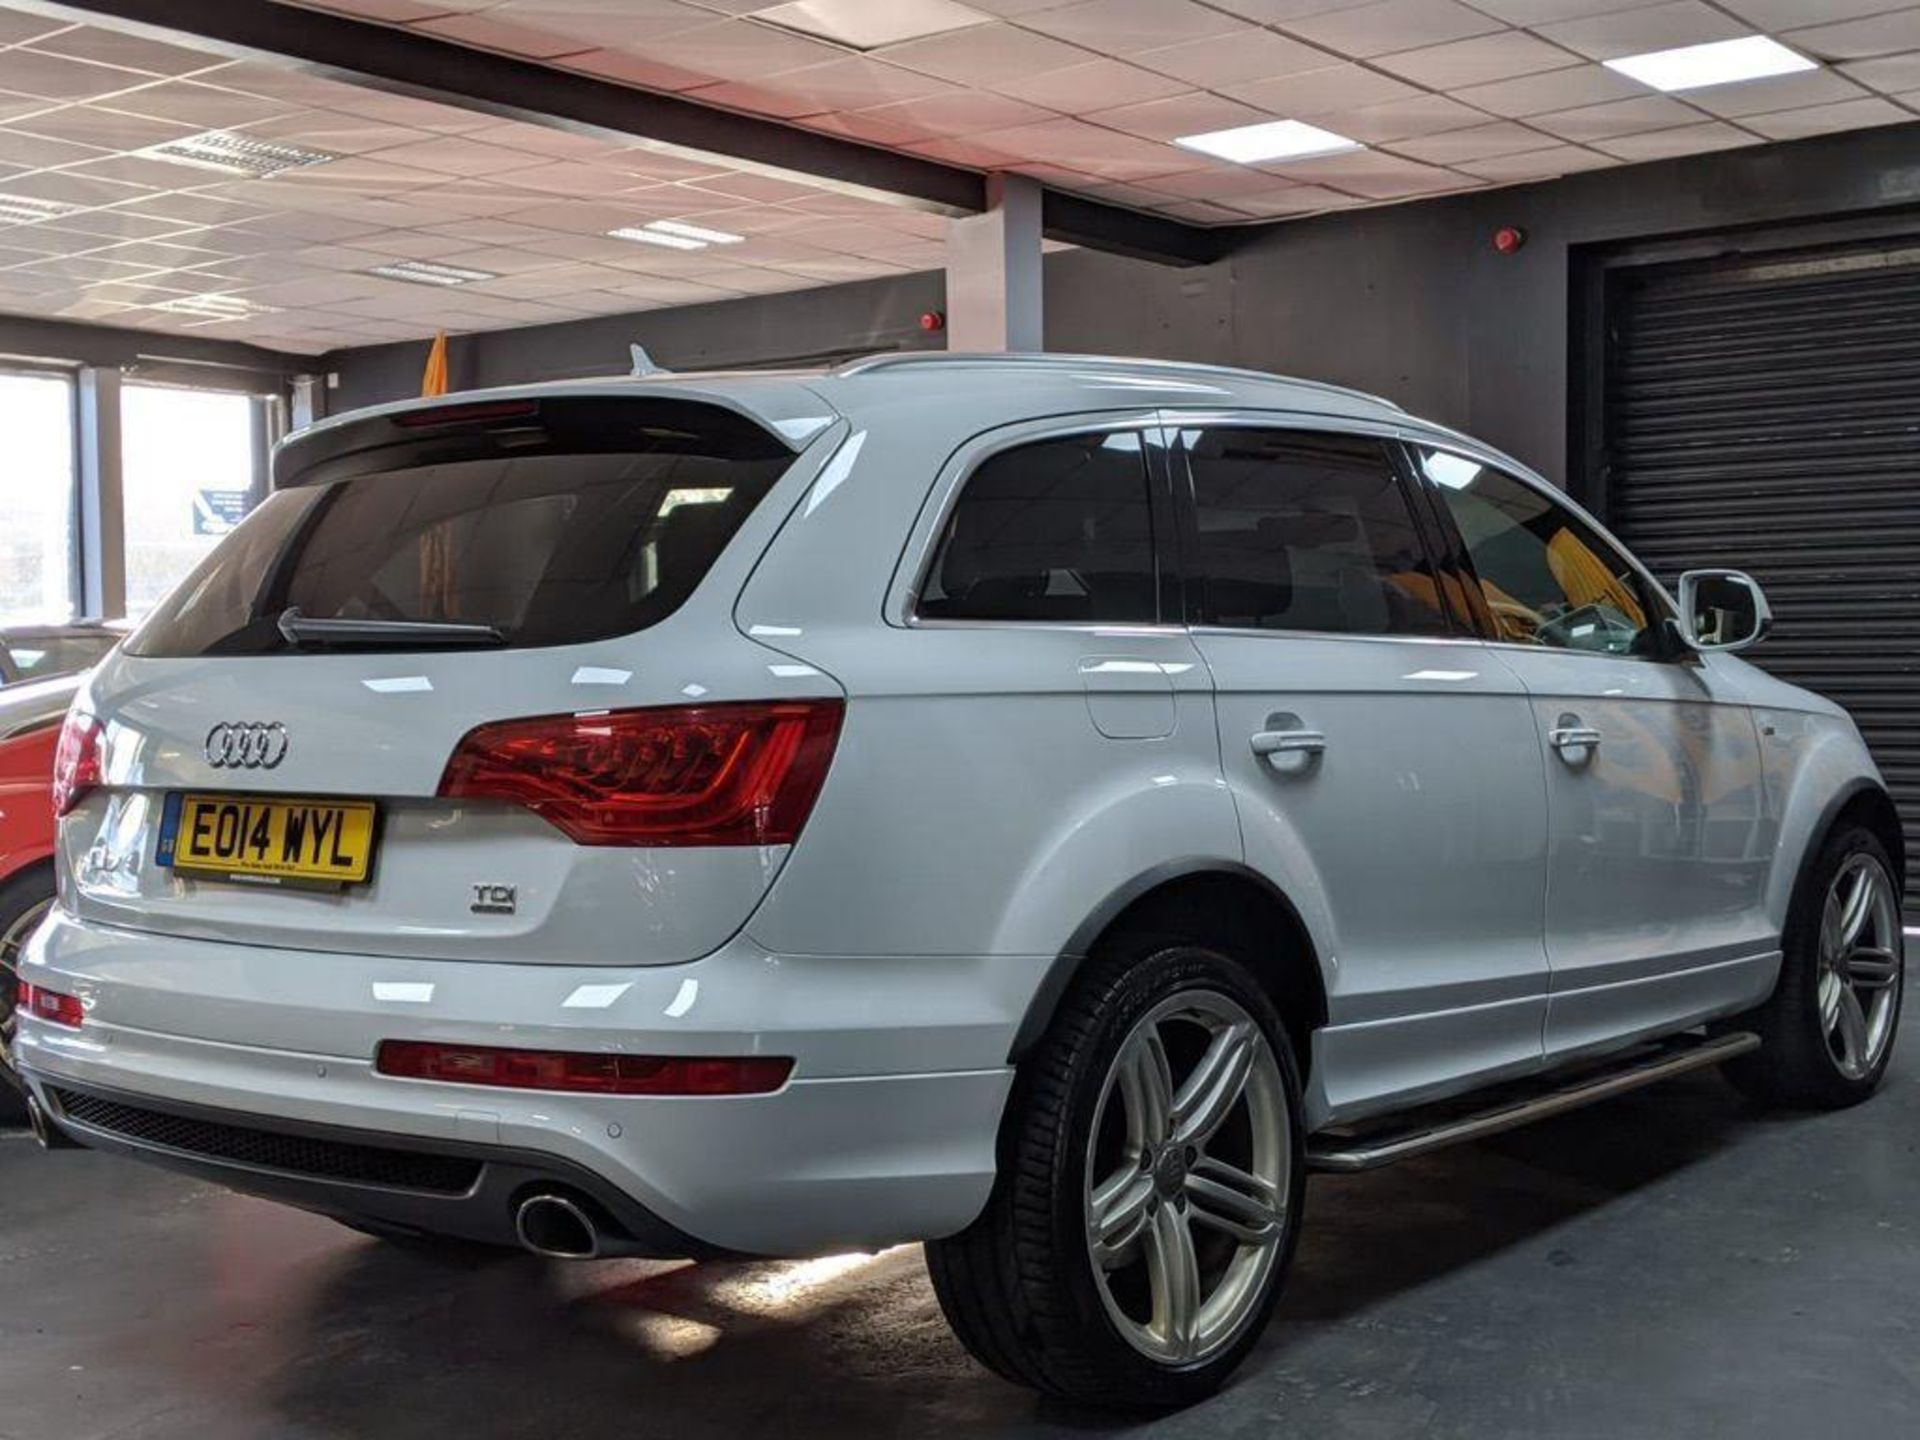 2014/14 REG AUDI Q7 S LINE + TDI QUATTRO 3.0 DIESEL AUTO 245 PS 7 SEAT, SHOWING 3 FORMER KEEPERS - Image 5 of 36